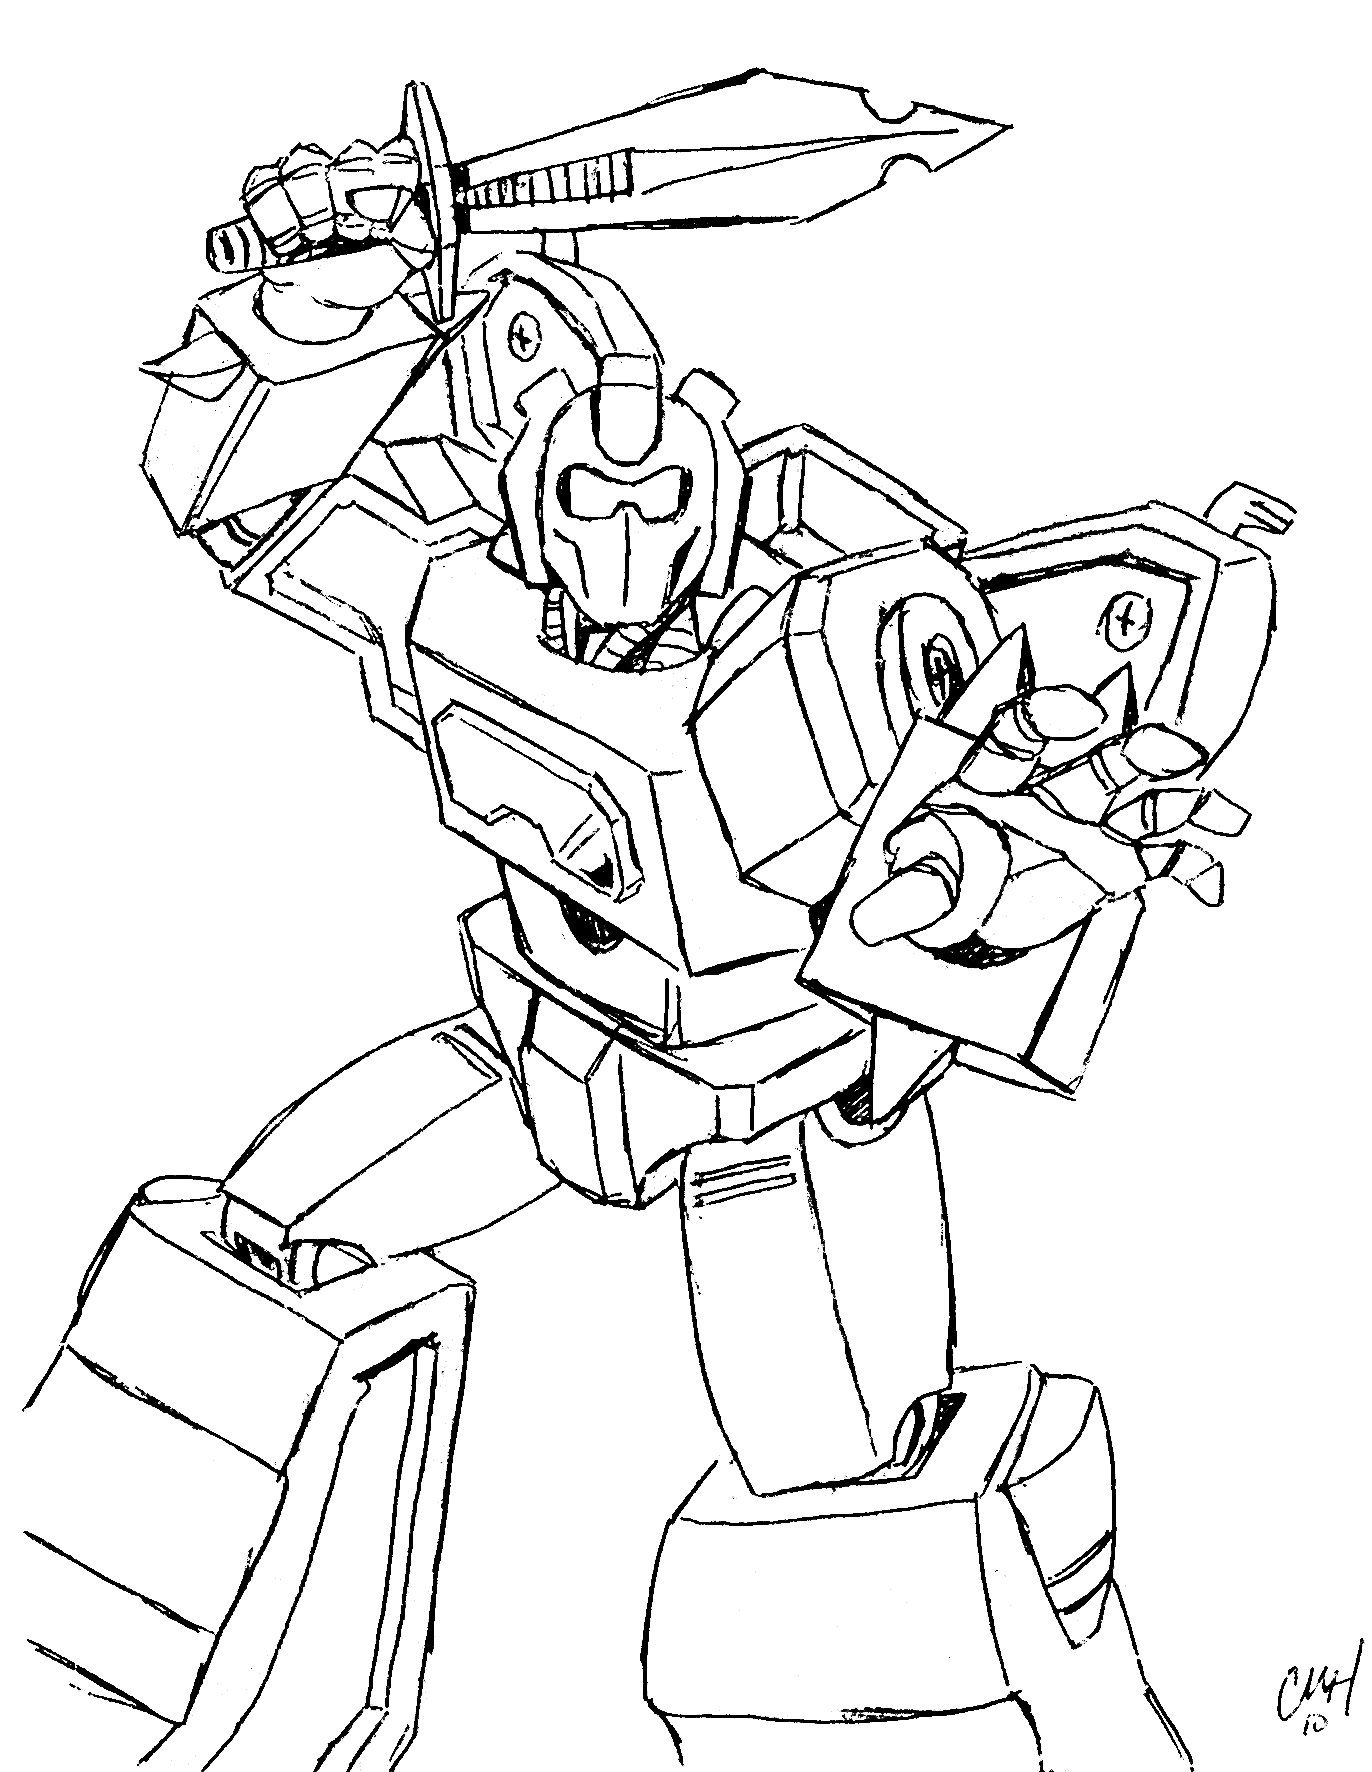 Kids coloring book pages free - Transformers Age Of Extinction Coloring Pages Free Coloring Pages For Kids